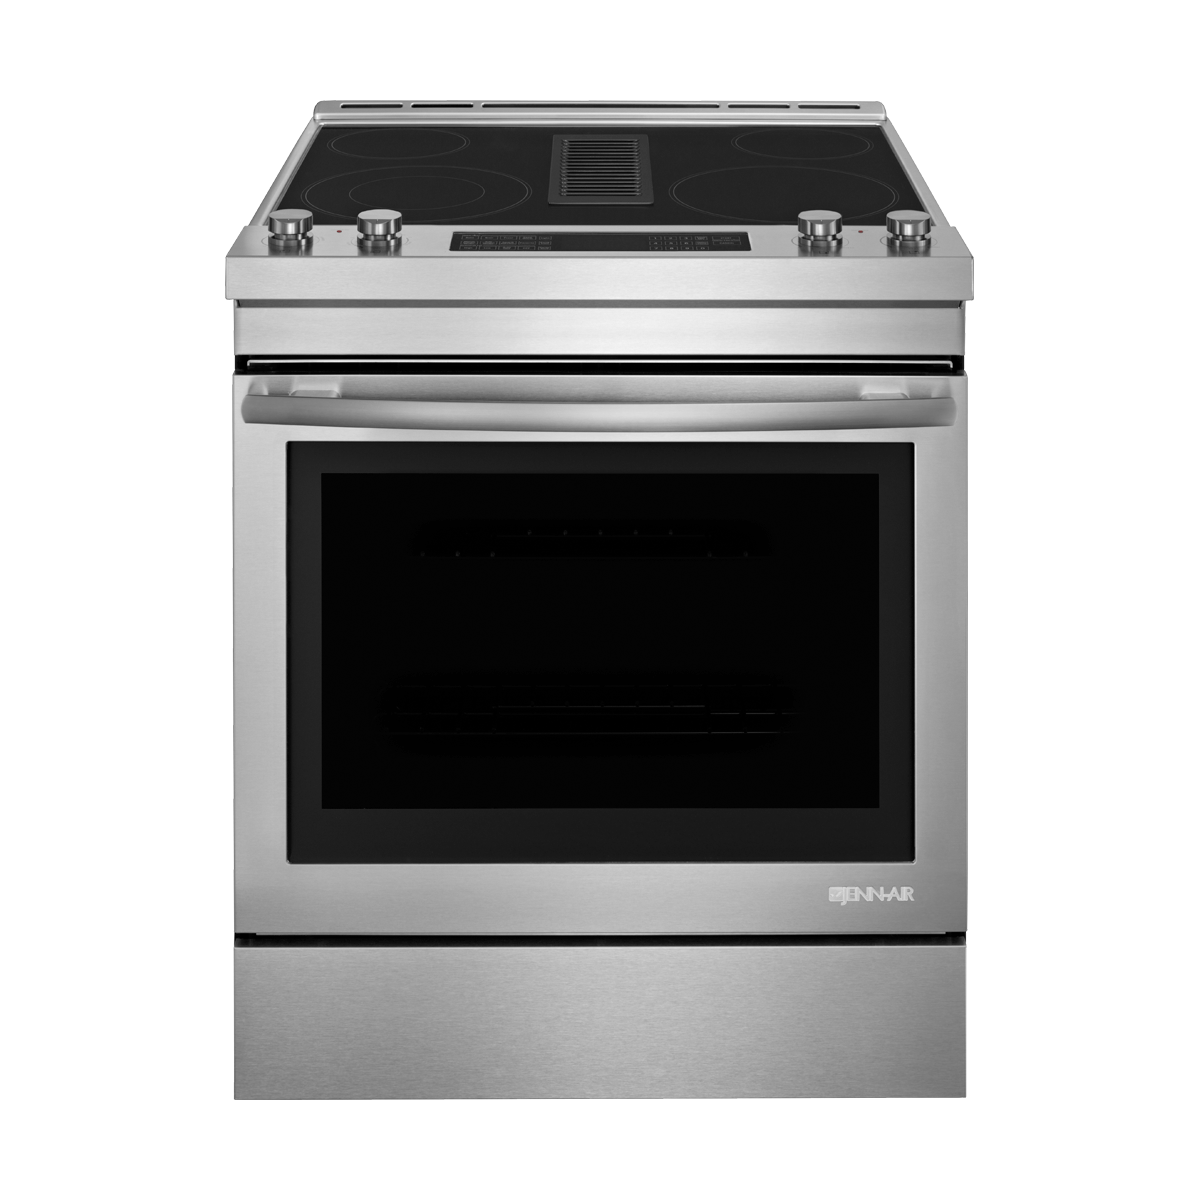 Jenn air 30 electric downdraft range jes1750es review for What is a downdraft range